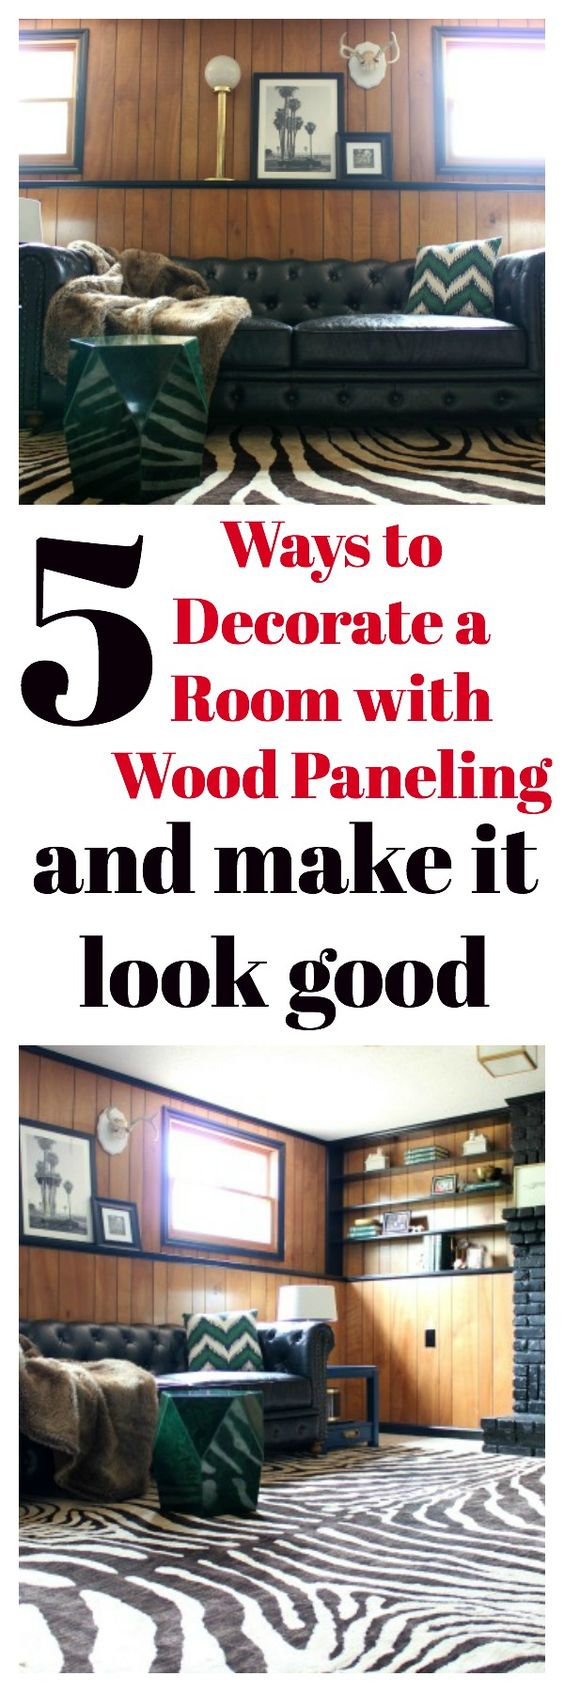 Five Ways To Decorate A Room With Wood Paneling Money